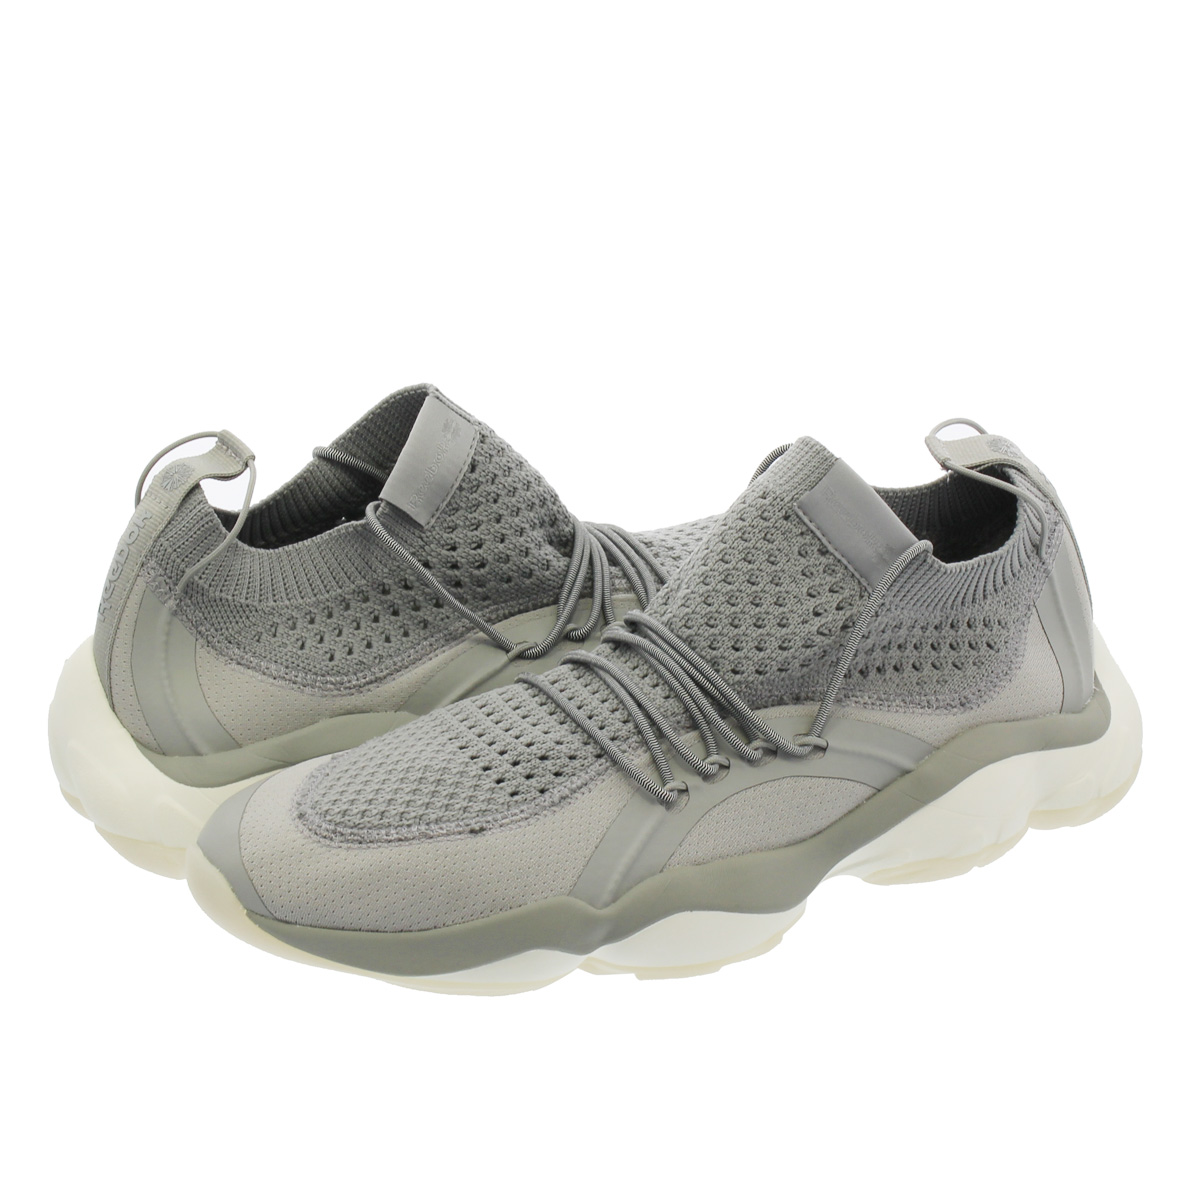 4a92d9a99d8 LOWTEX BIG-SMALL SHOP  Reebok DMX FUSION CI Reebok DMX fusion CI  GREY BLACK WHITE CHALK